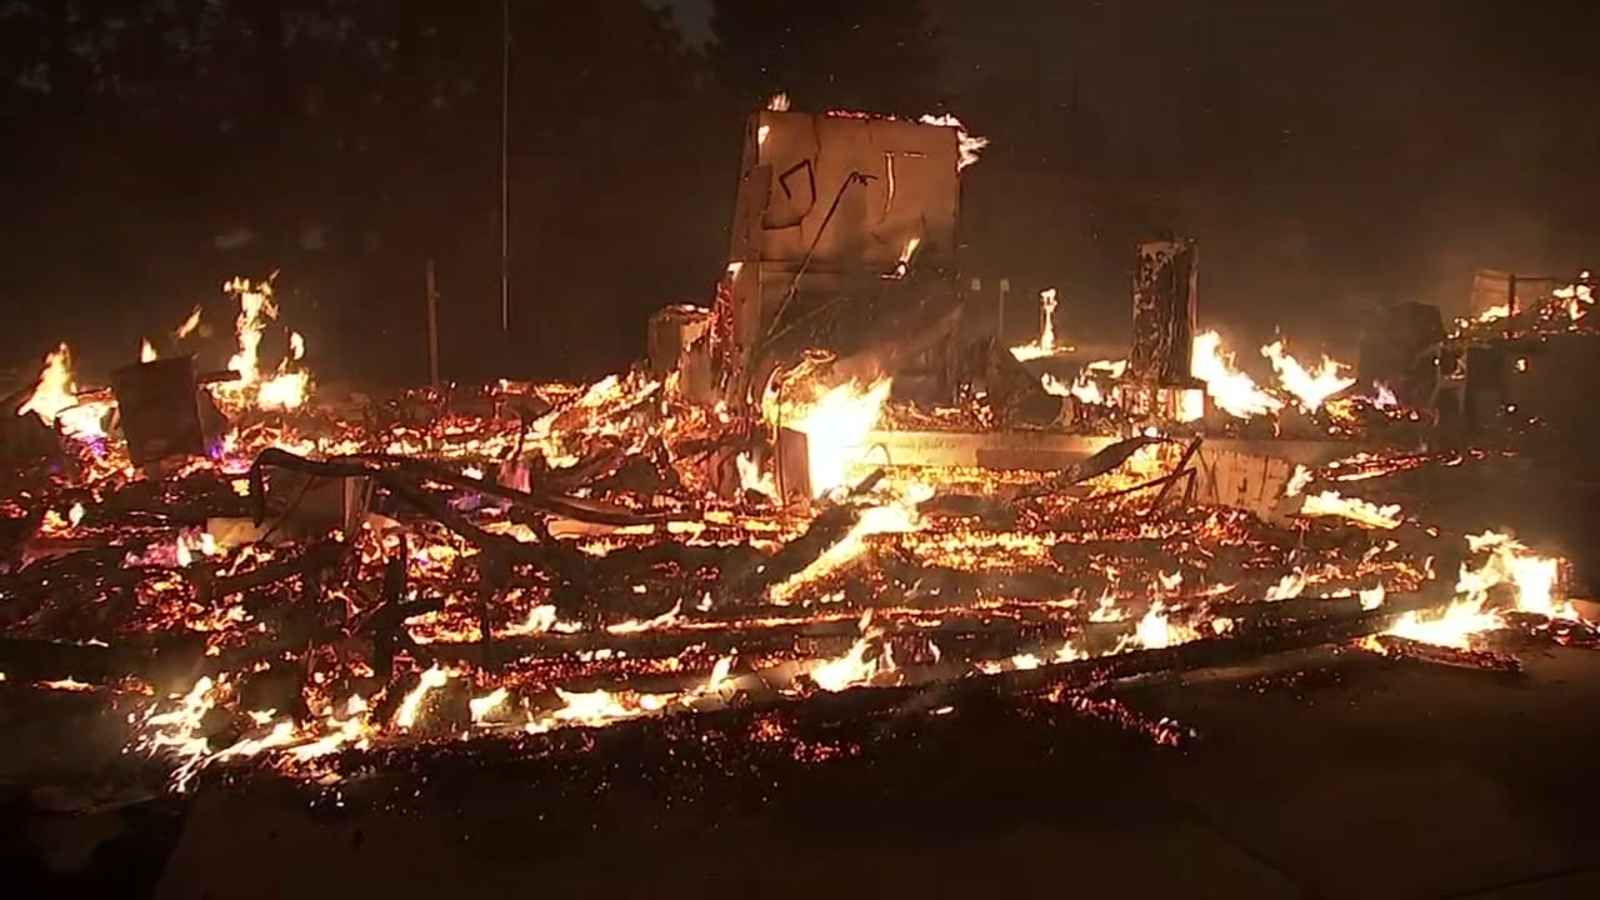 Camp Fire in Butte County grows to 105,000 acres with 20 percent containment